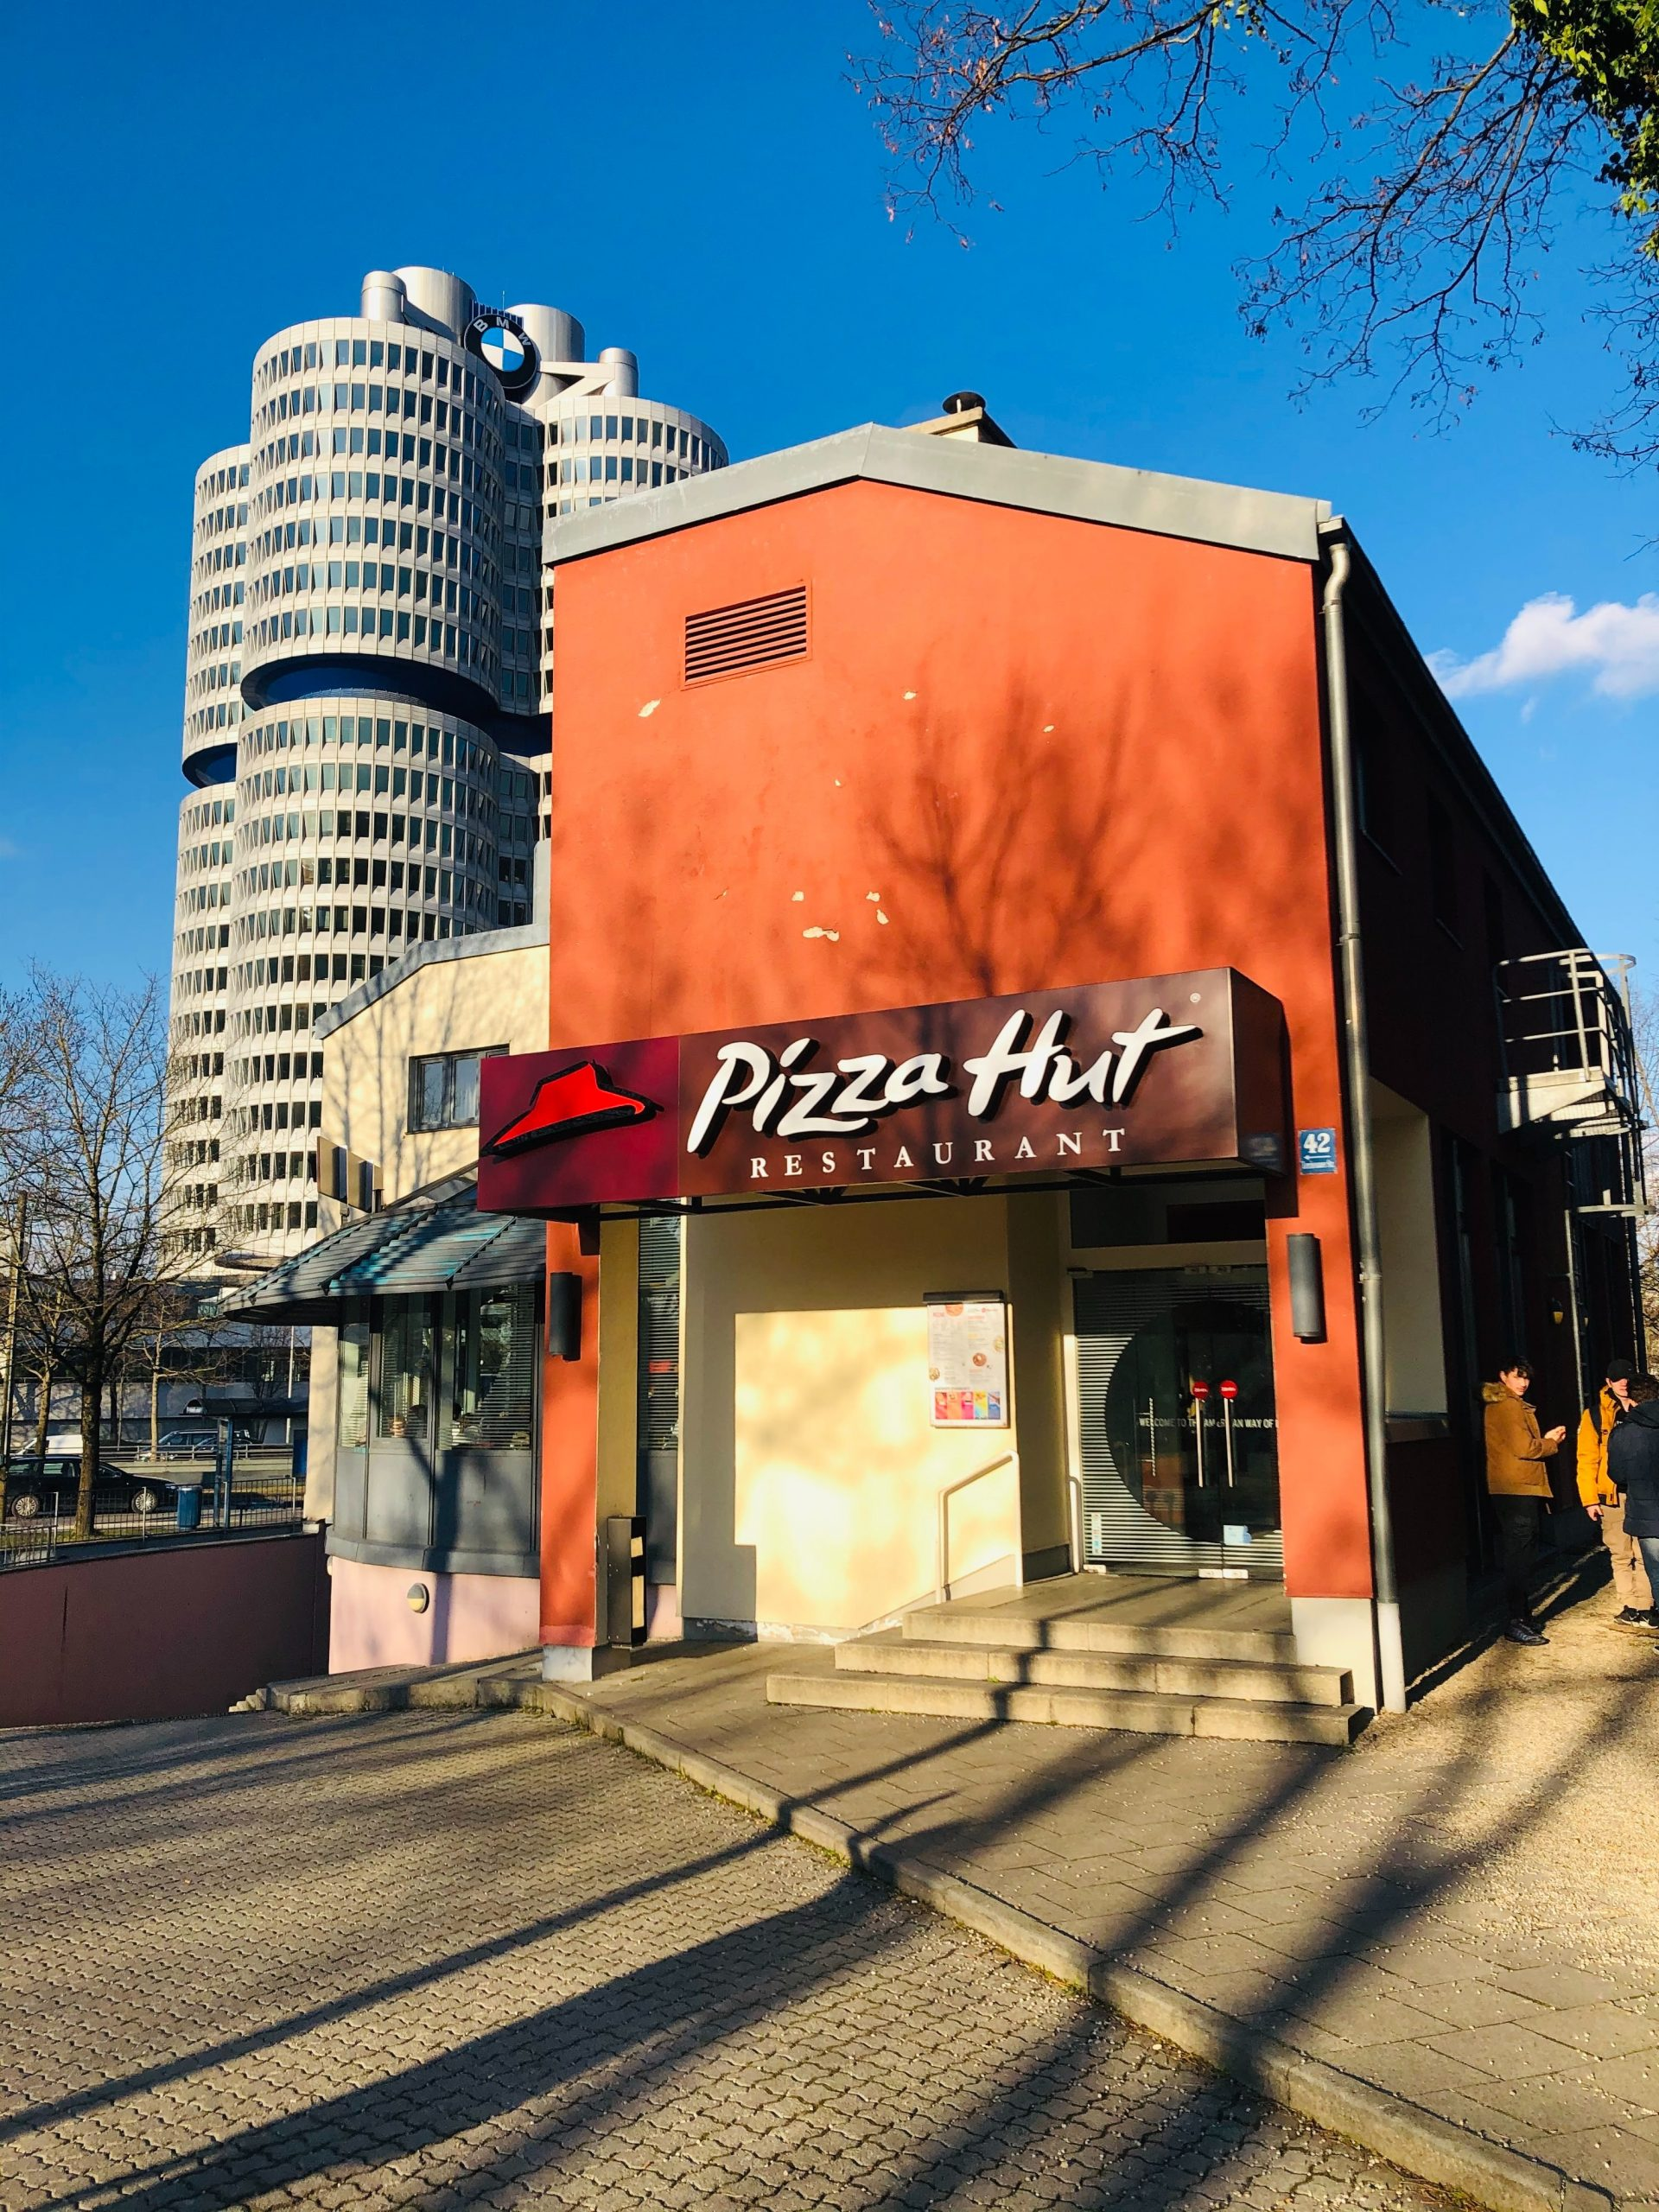 Pizza Hut is developing an AI that will recommend food to you based on your local weather